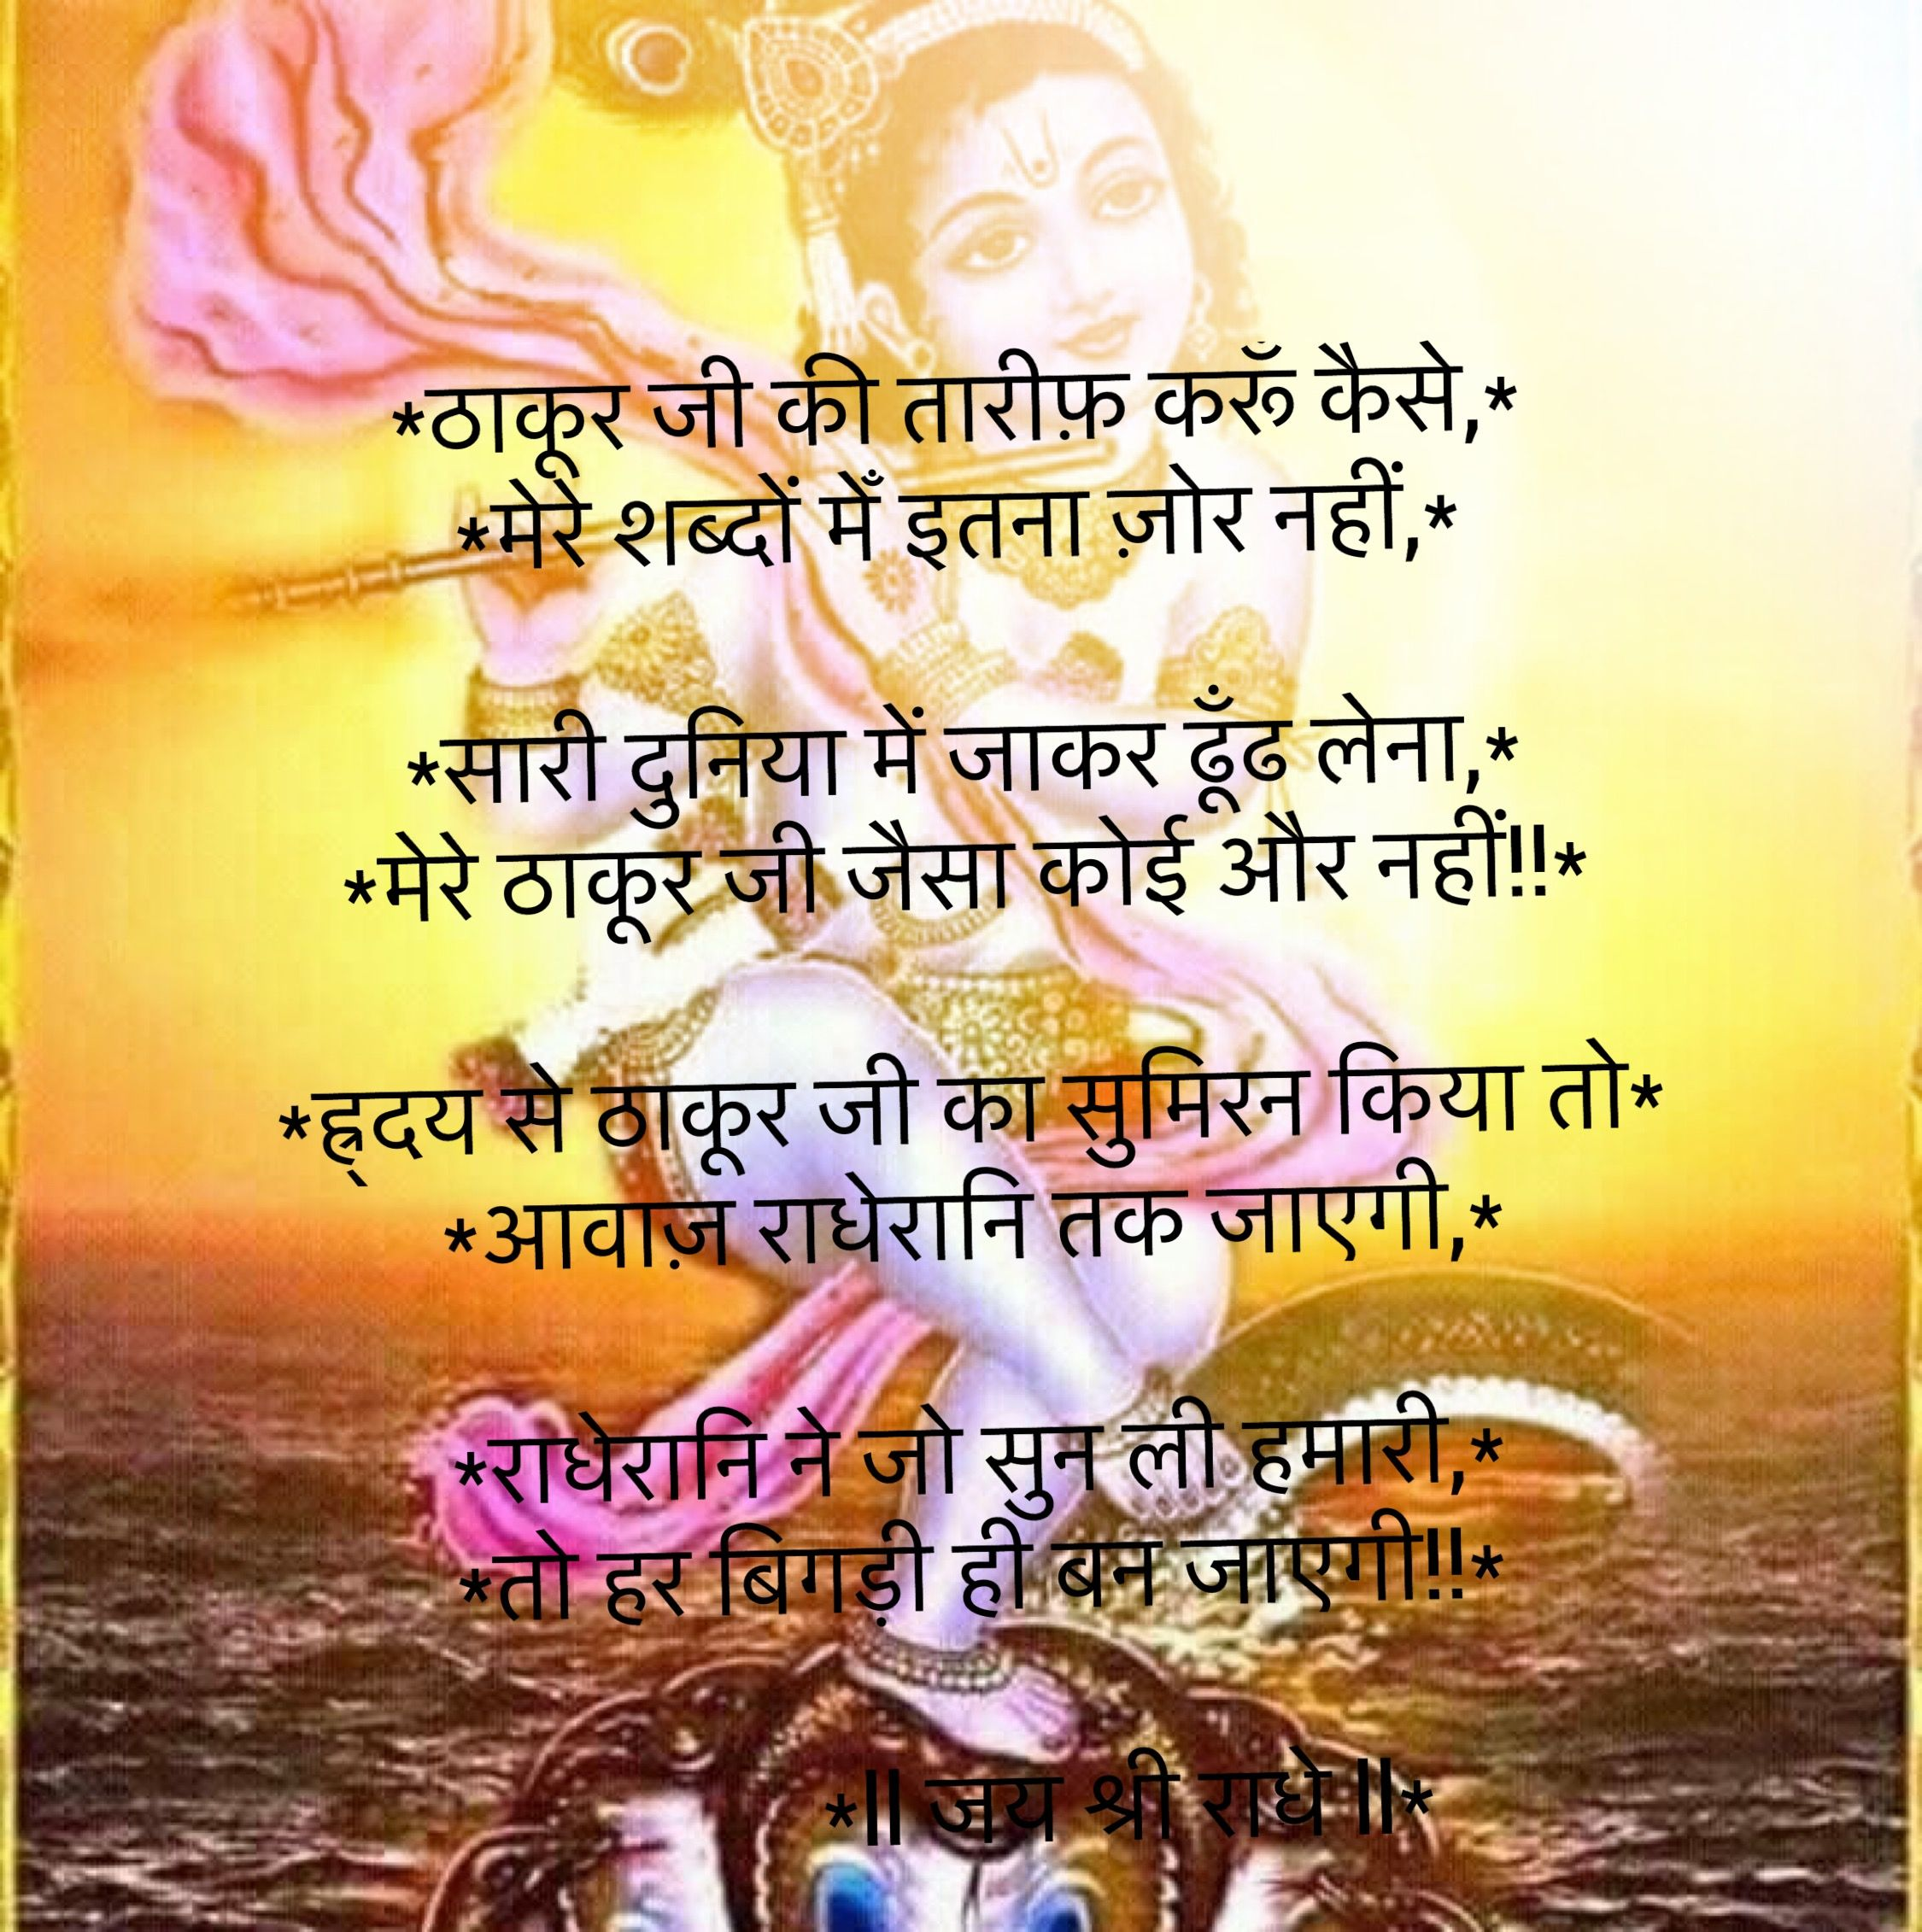 Shree Krishna Lord Krishna Krishna Quotes Indian Quotes Trust God Zen Beautiful Things India Quotes Hindu Quotes